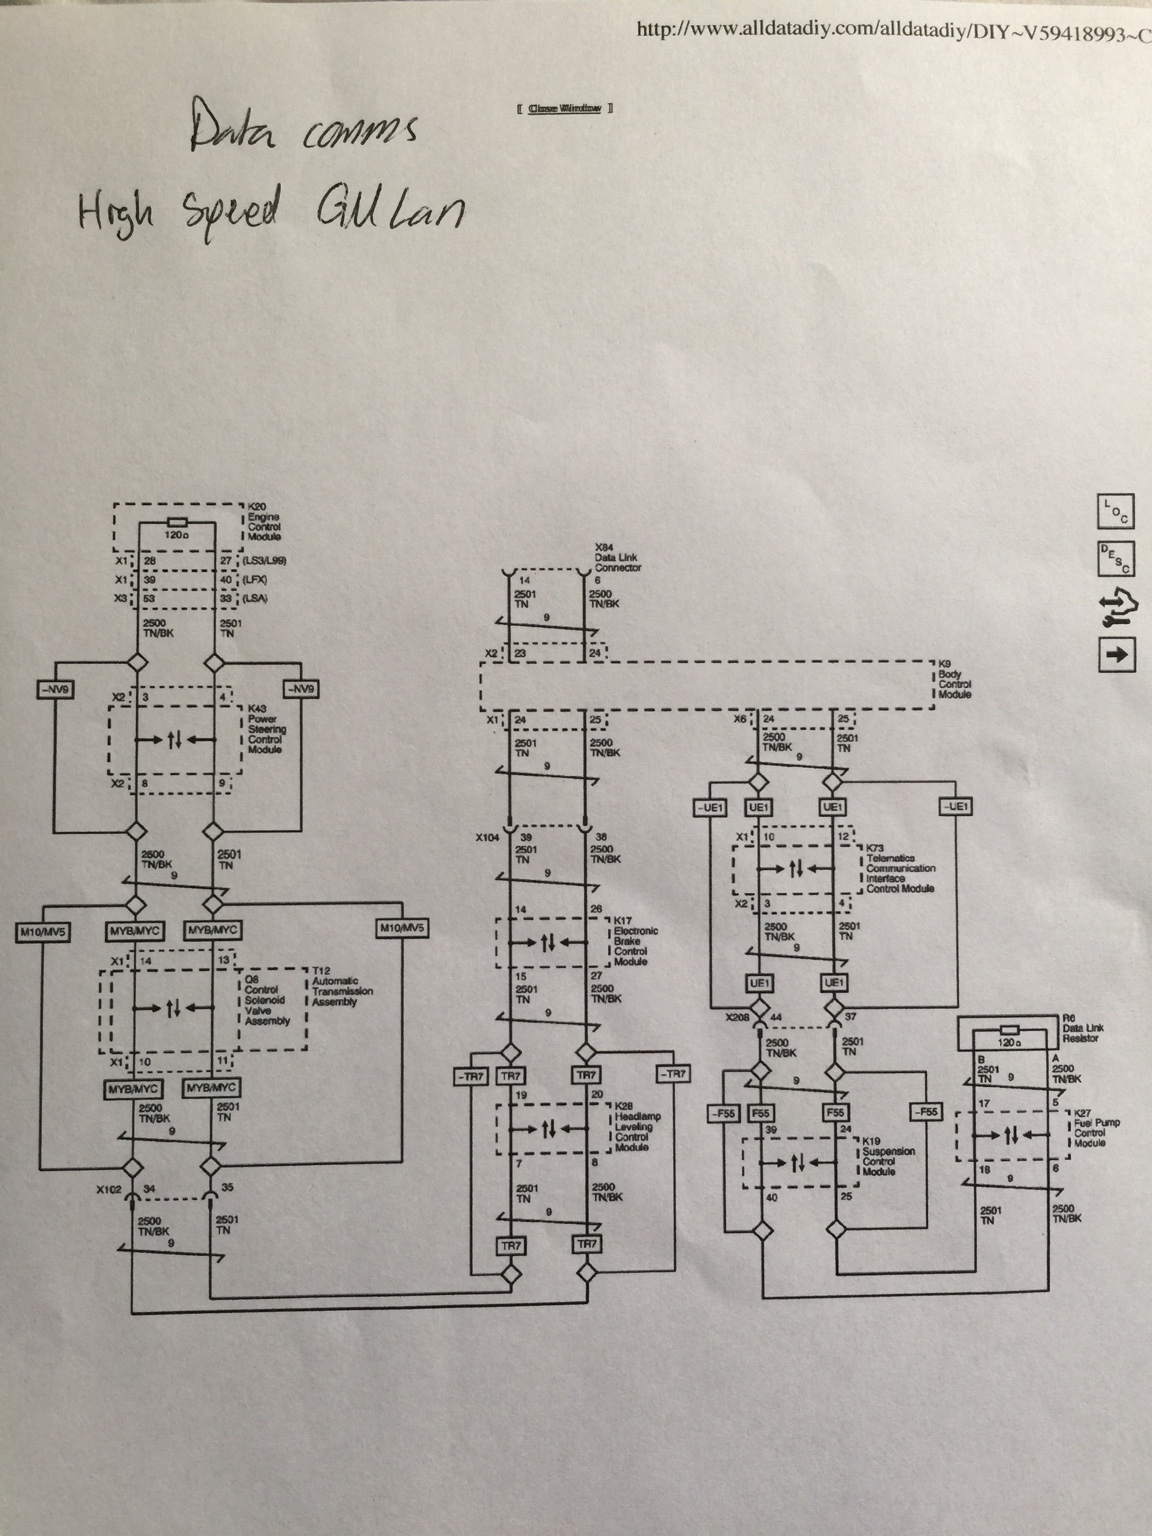 anyone have 2015 ss manual with harness information ... 1970 chevelle ss wiring diagram #15